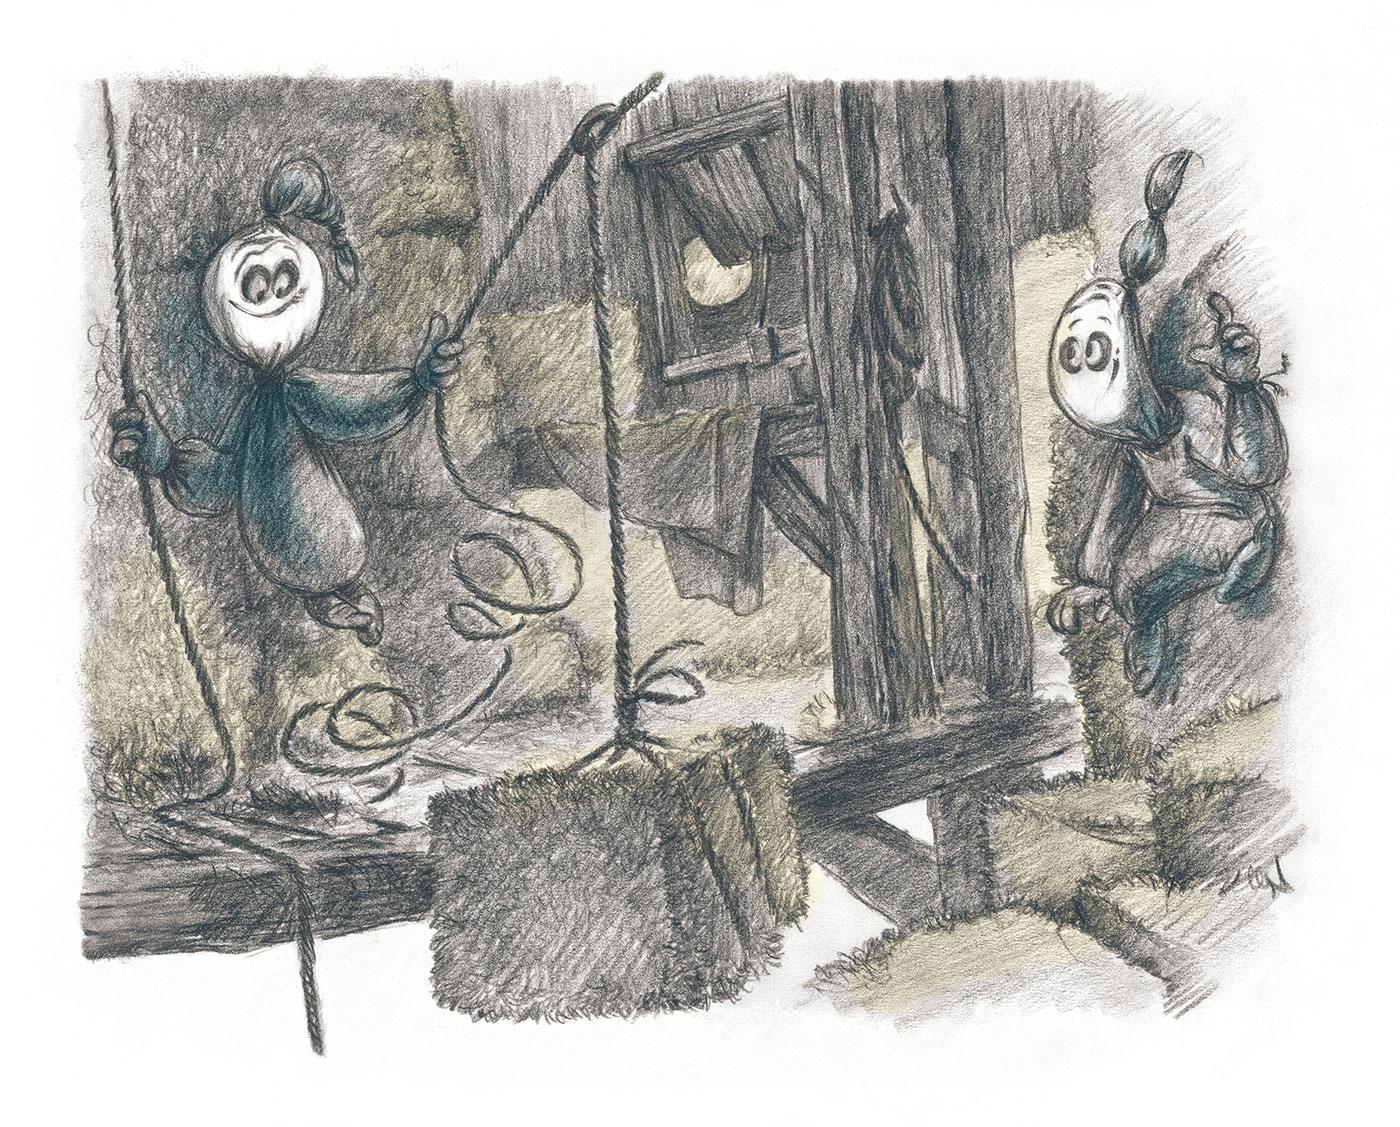 Spooky Ghosts - Book Illustration - In the barn